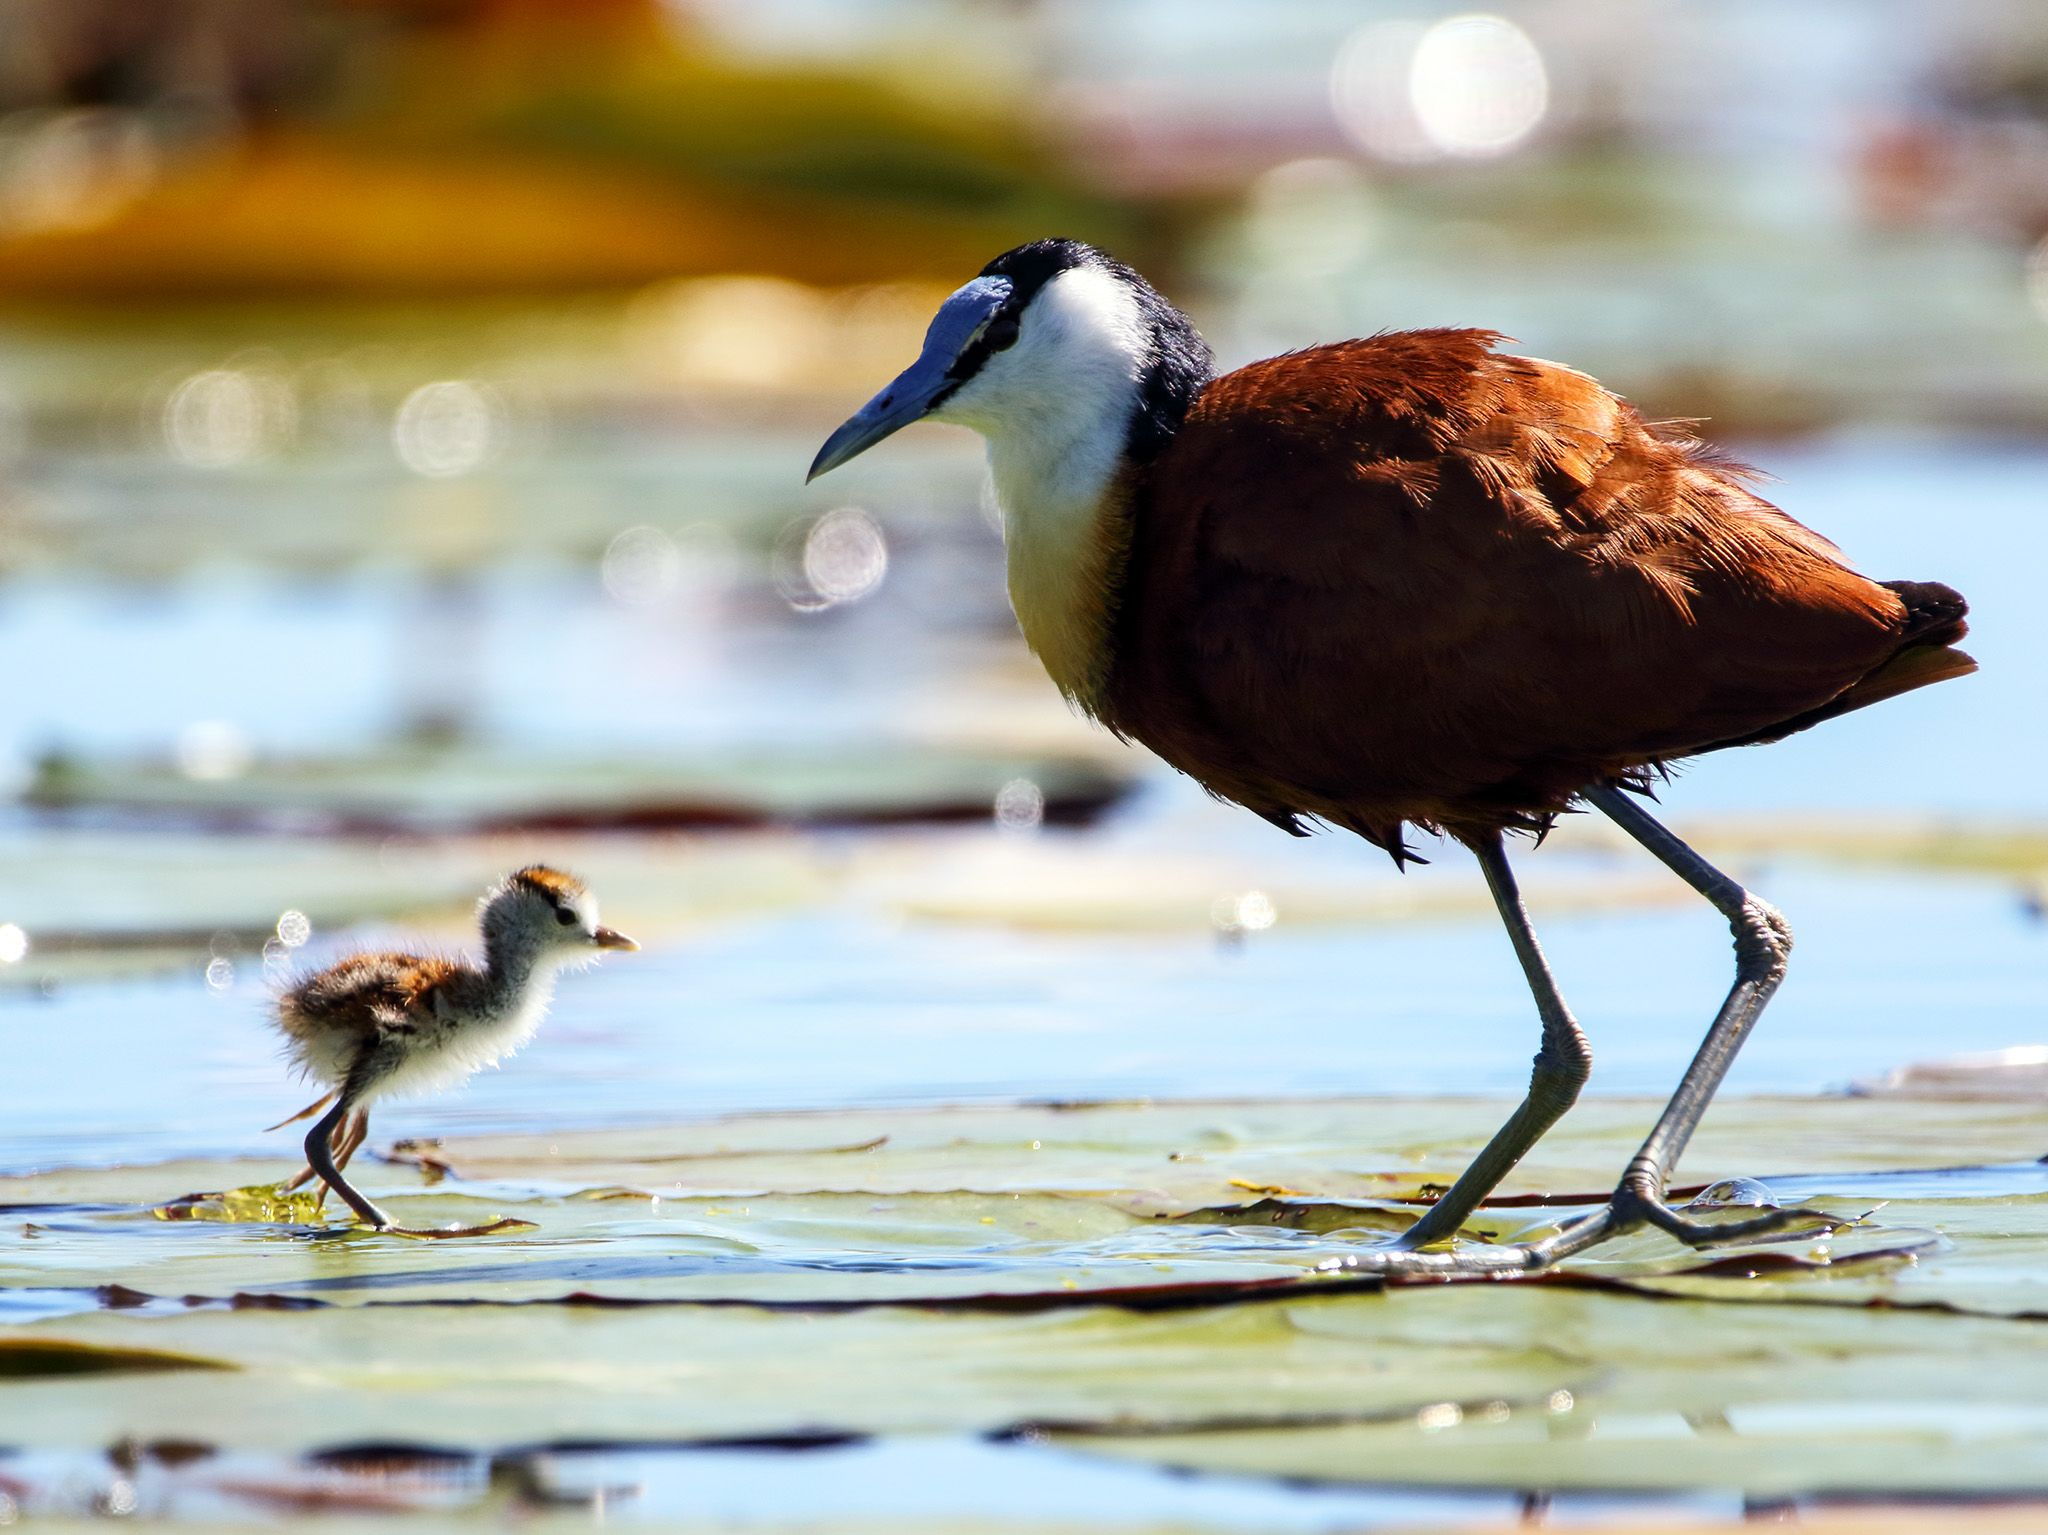 A male Jacana watches as its young chick crosses the mat of Lilly pads that cover one of the... [Photo of the day - October 2020]